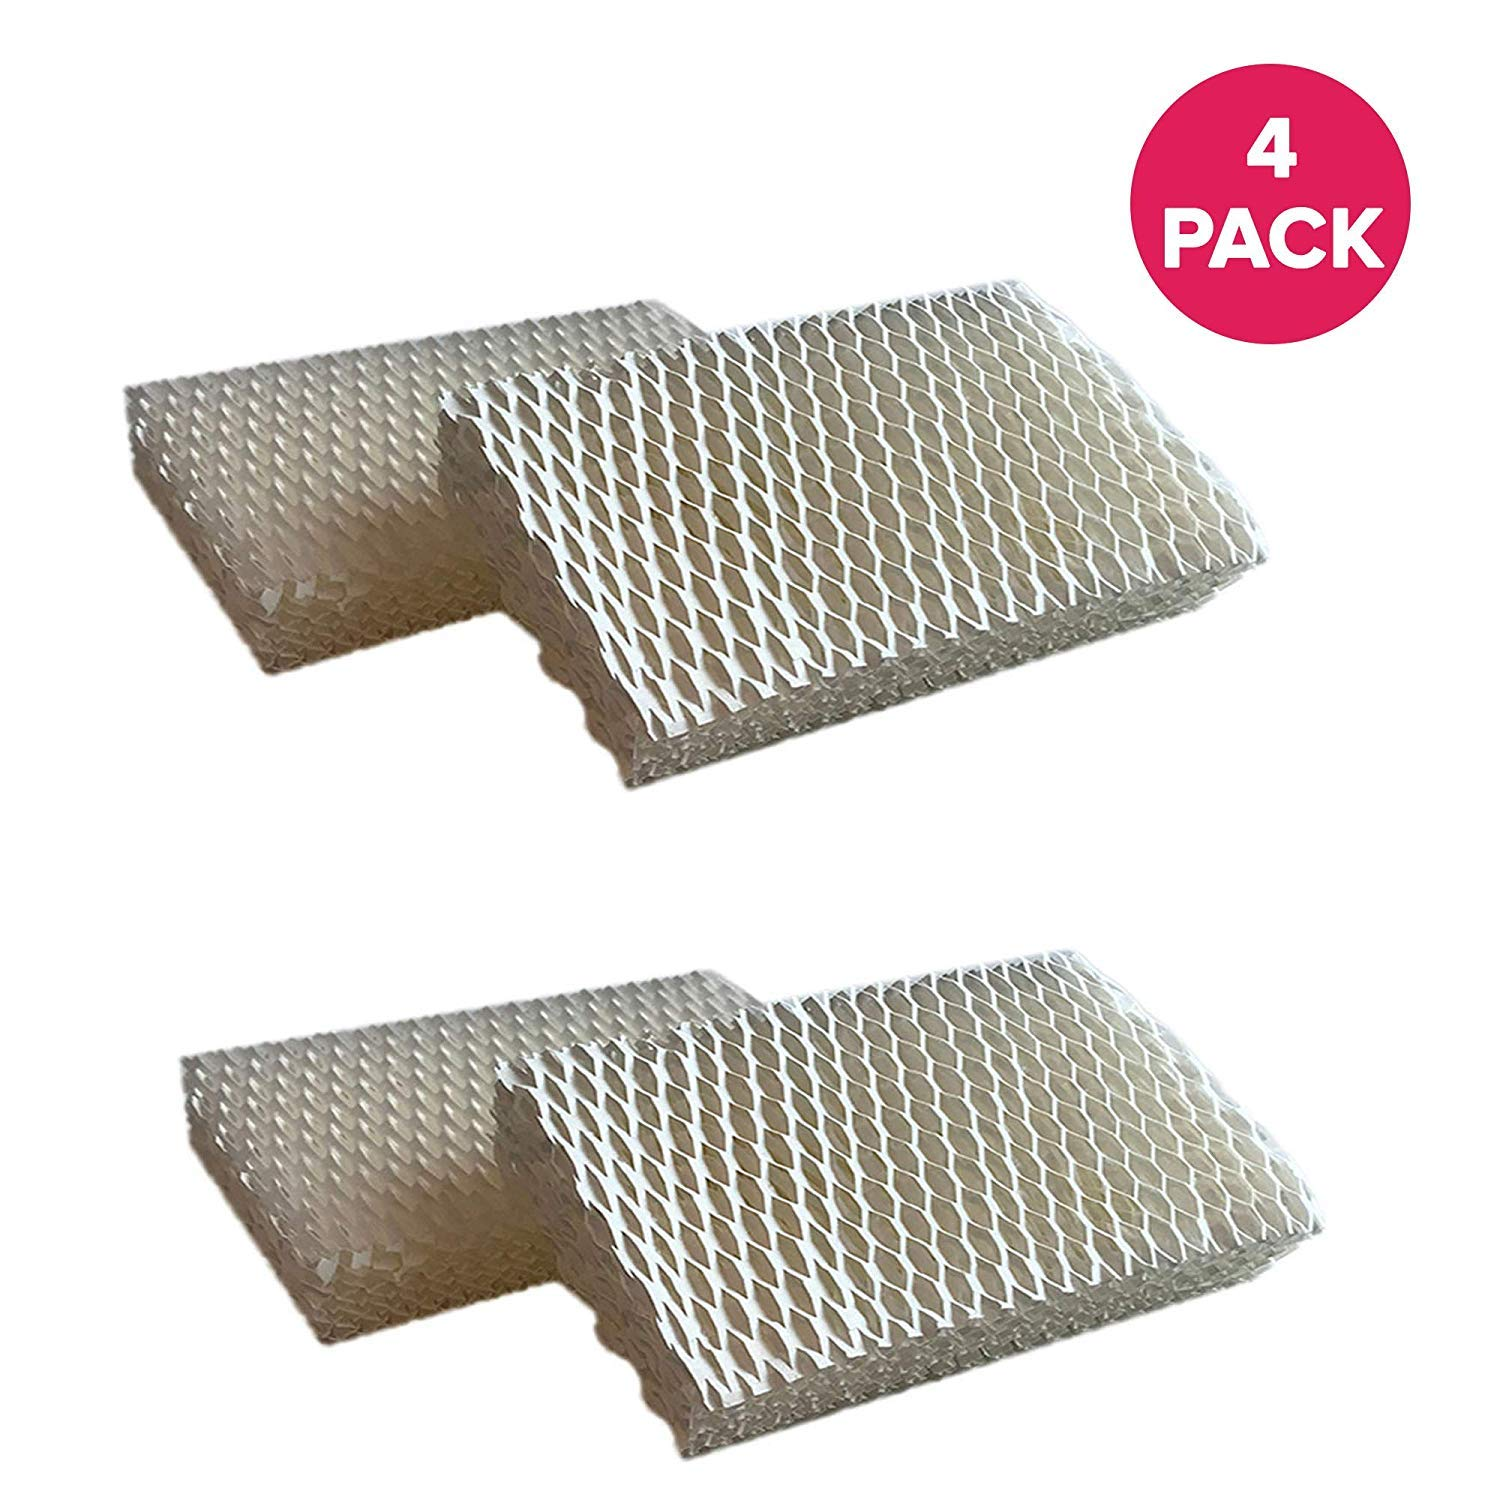 D13-C Crucial Air Filter Replacement Parts Compatible With Honeywell Part # AC-813 D-13 Simple Easy Use For Home Vacuum - Fits Honeywell HCM-525 Humidifier Wick Filters 4 Pack